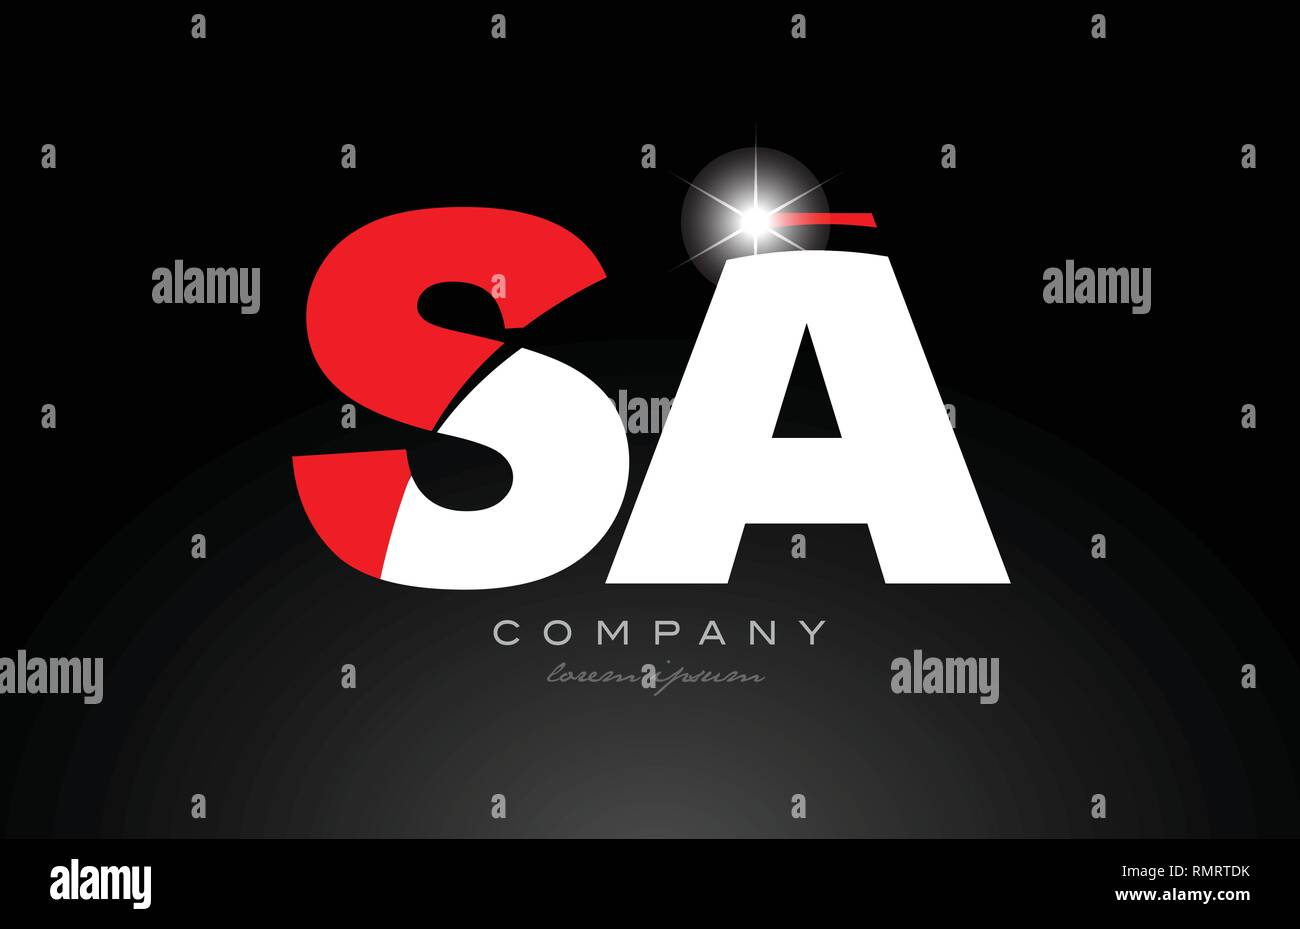 red white color alphabet letter combination sa s a logo icon design suitable for a company or business - Stock Vector